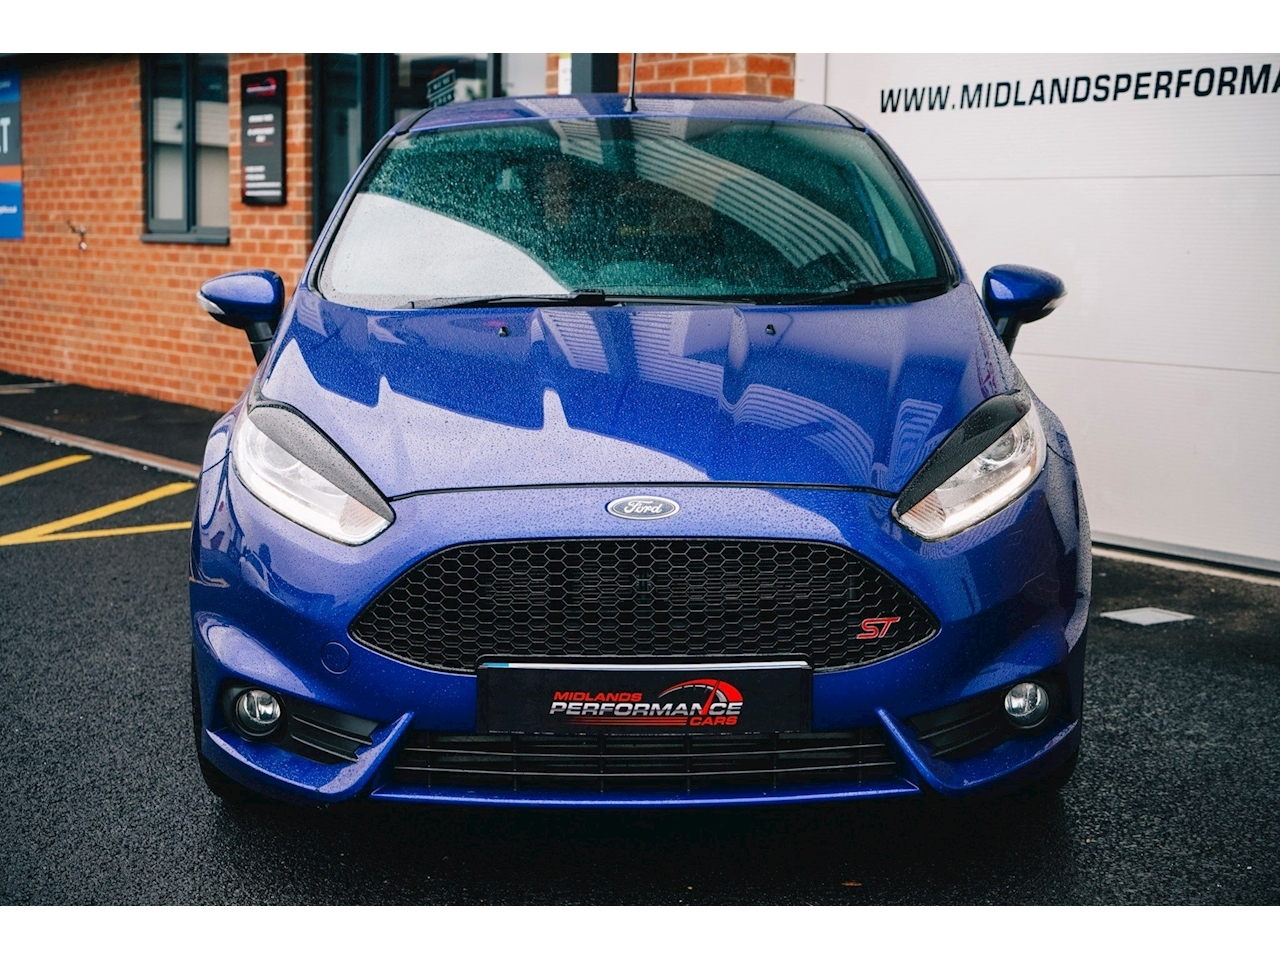 Fiesta St-2 Hatchback 1.6 Manual Petrol